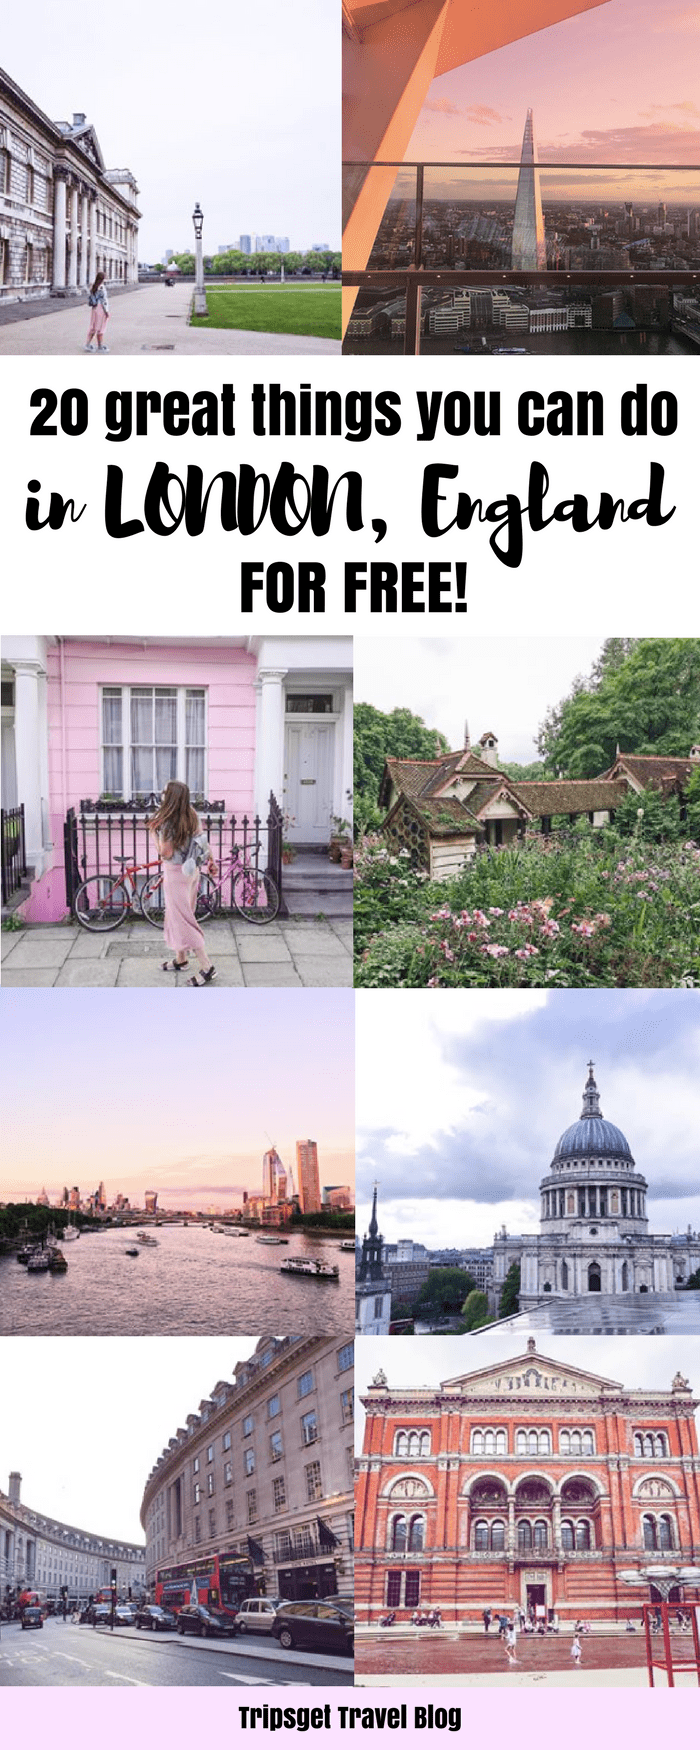 20 amazing things to do in London for free! Free things to do in London, England